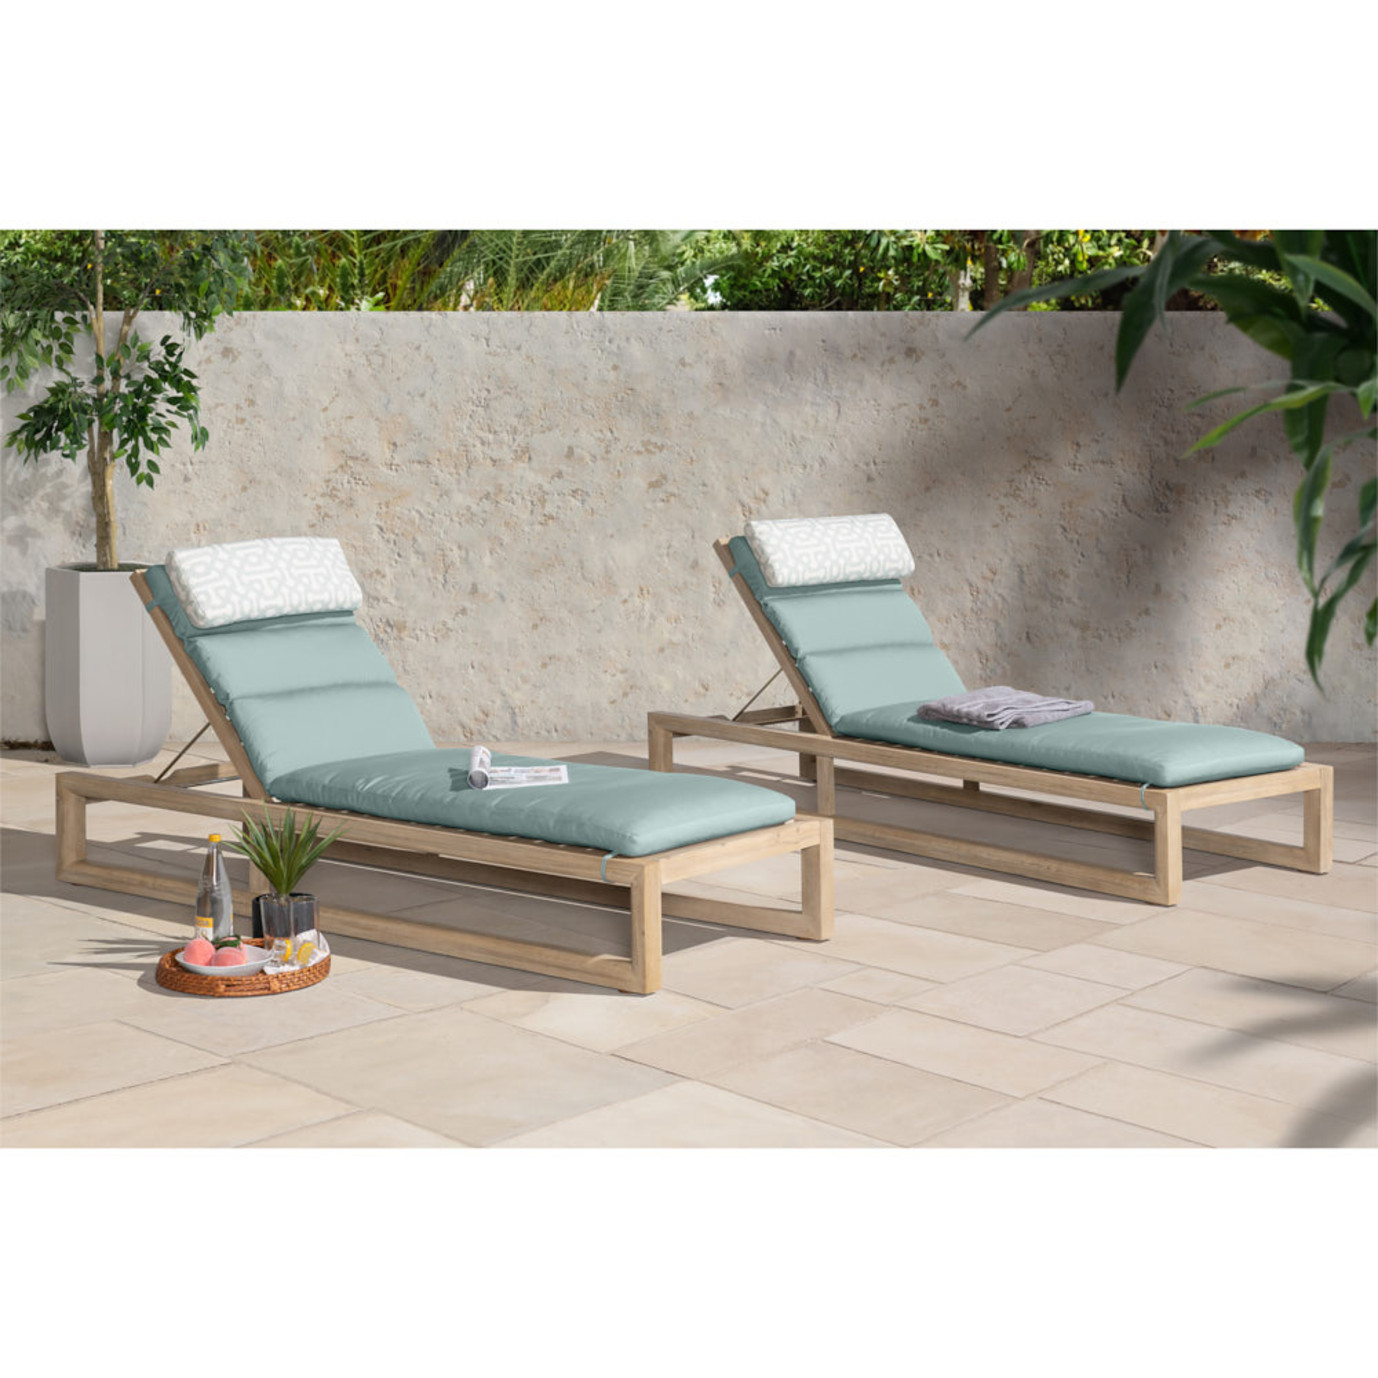 Benson™ Chaise Lounges - Slate Gray